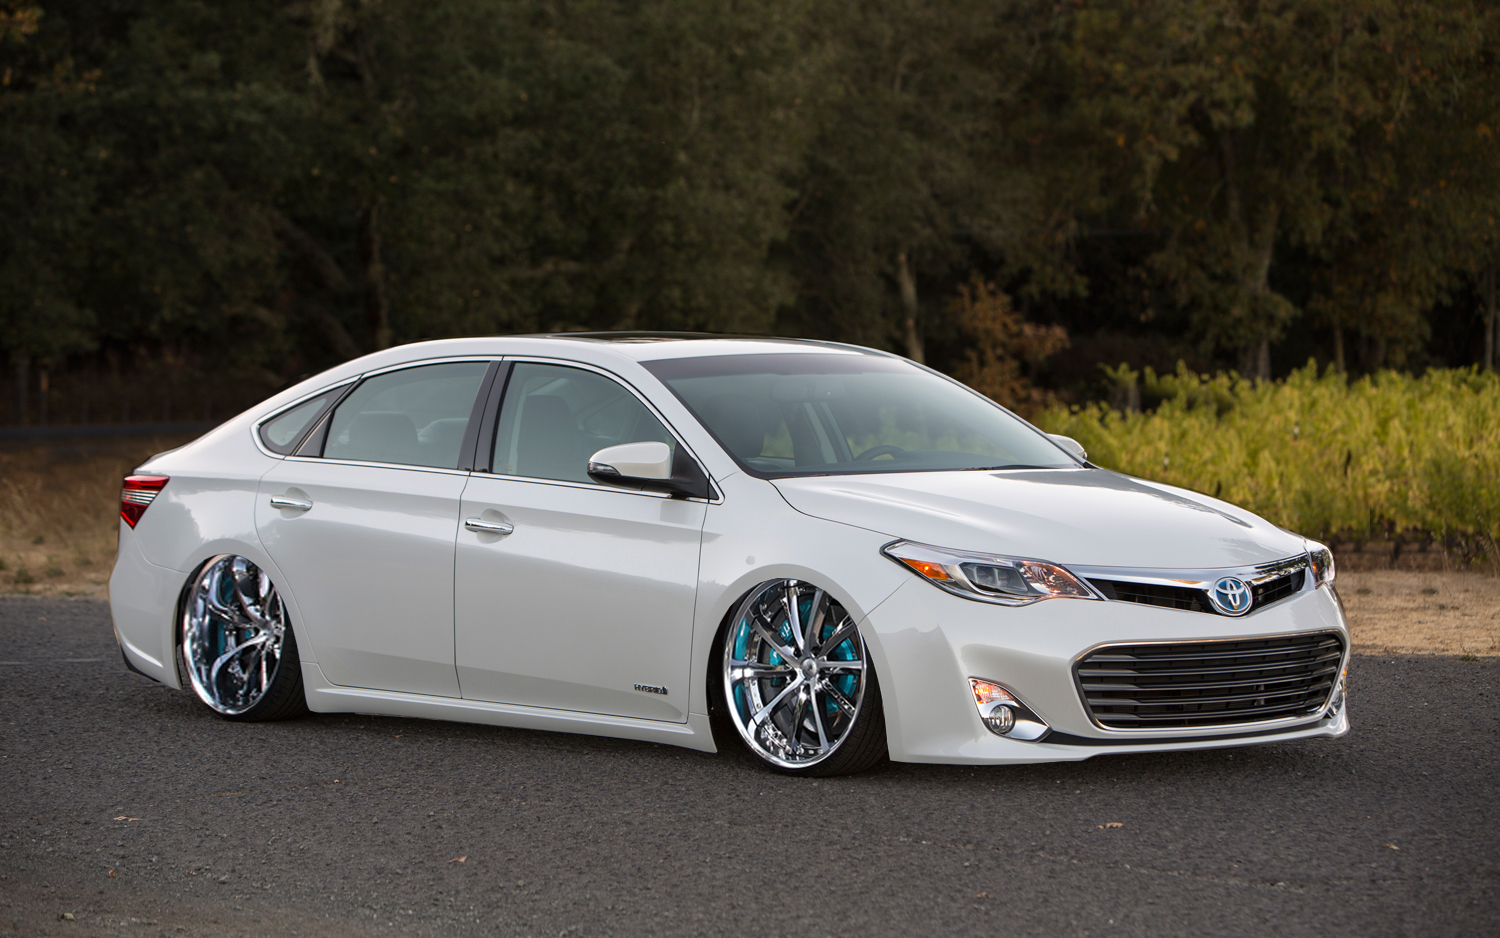 Vip Toyota Avalon Lifewithjson